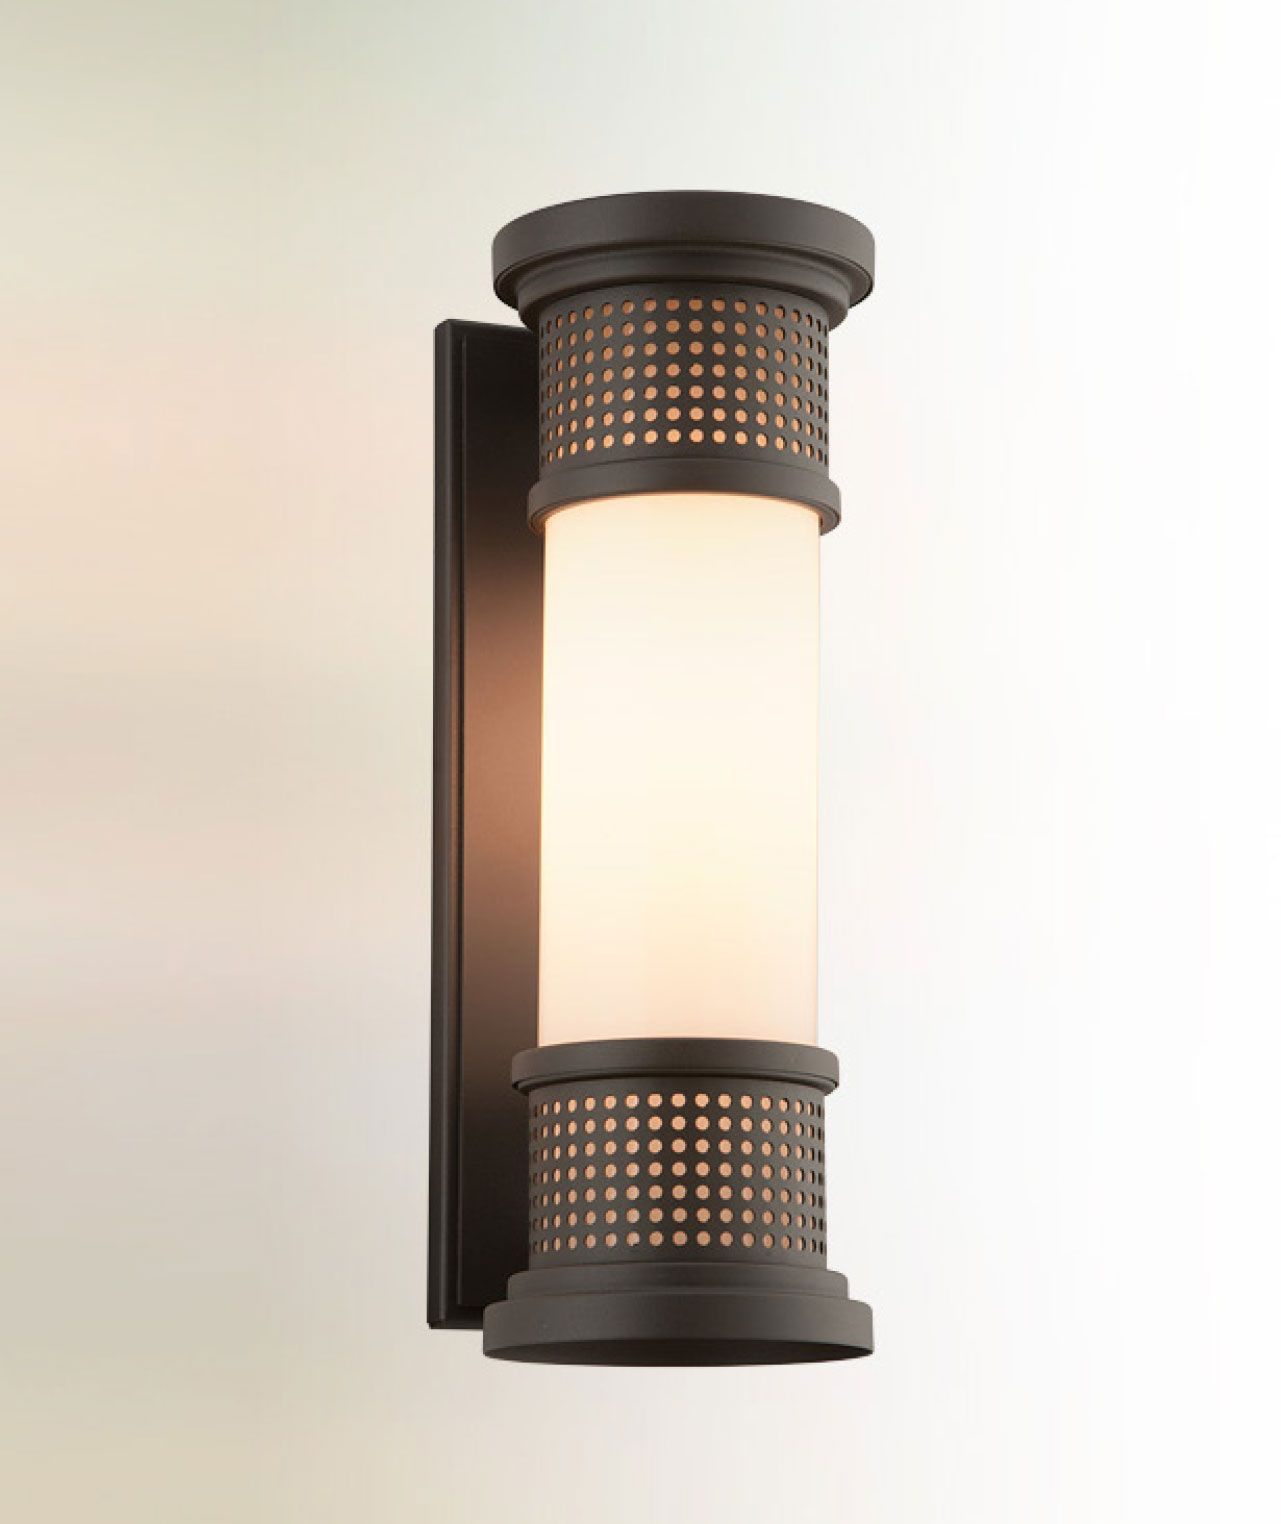 Mcqueen Led Exterior Wall Sconce By Troy Lighting Bl4671 Sconces Candle Wall Sconces Wall Sconces